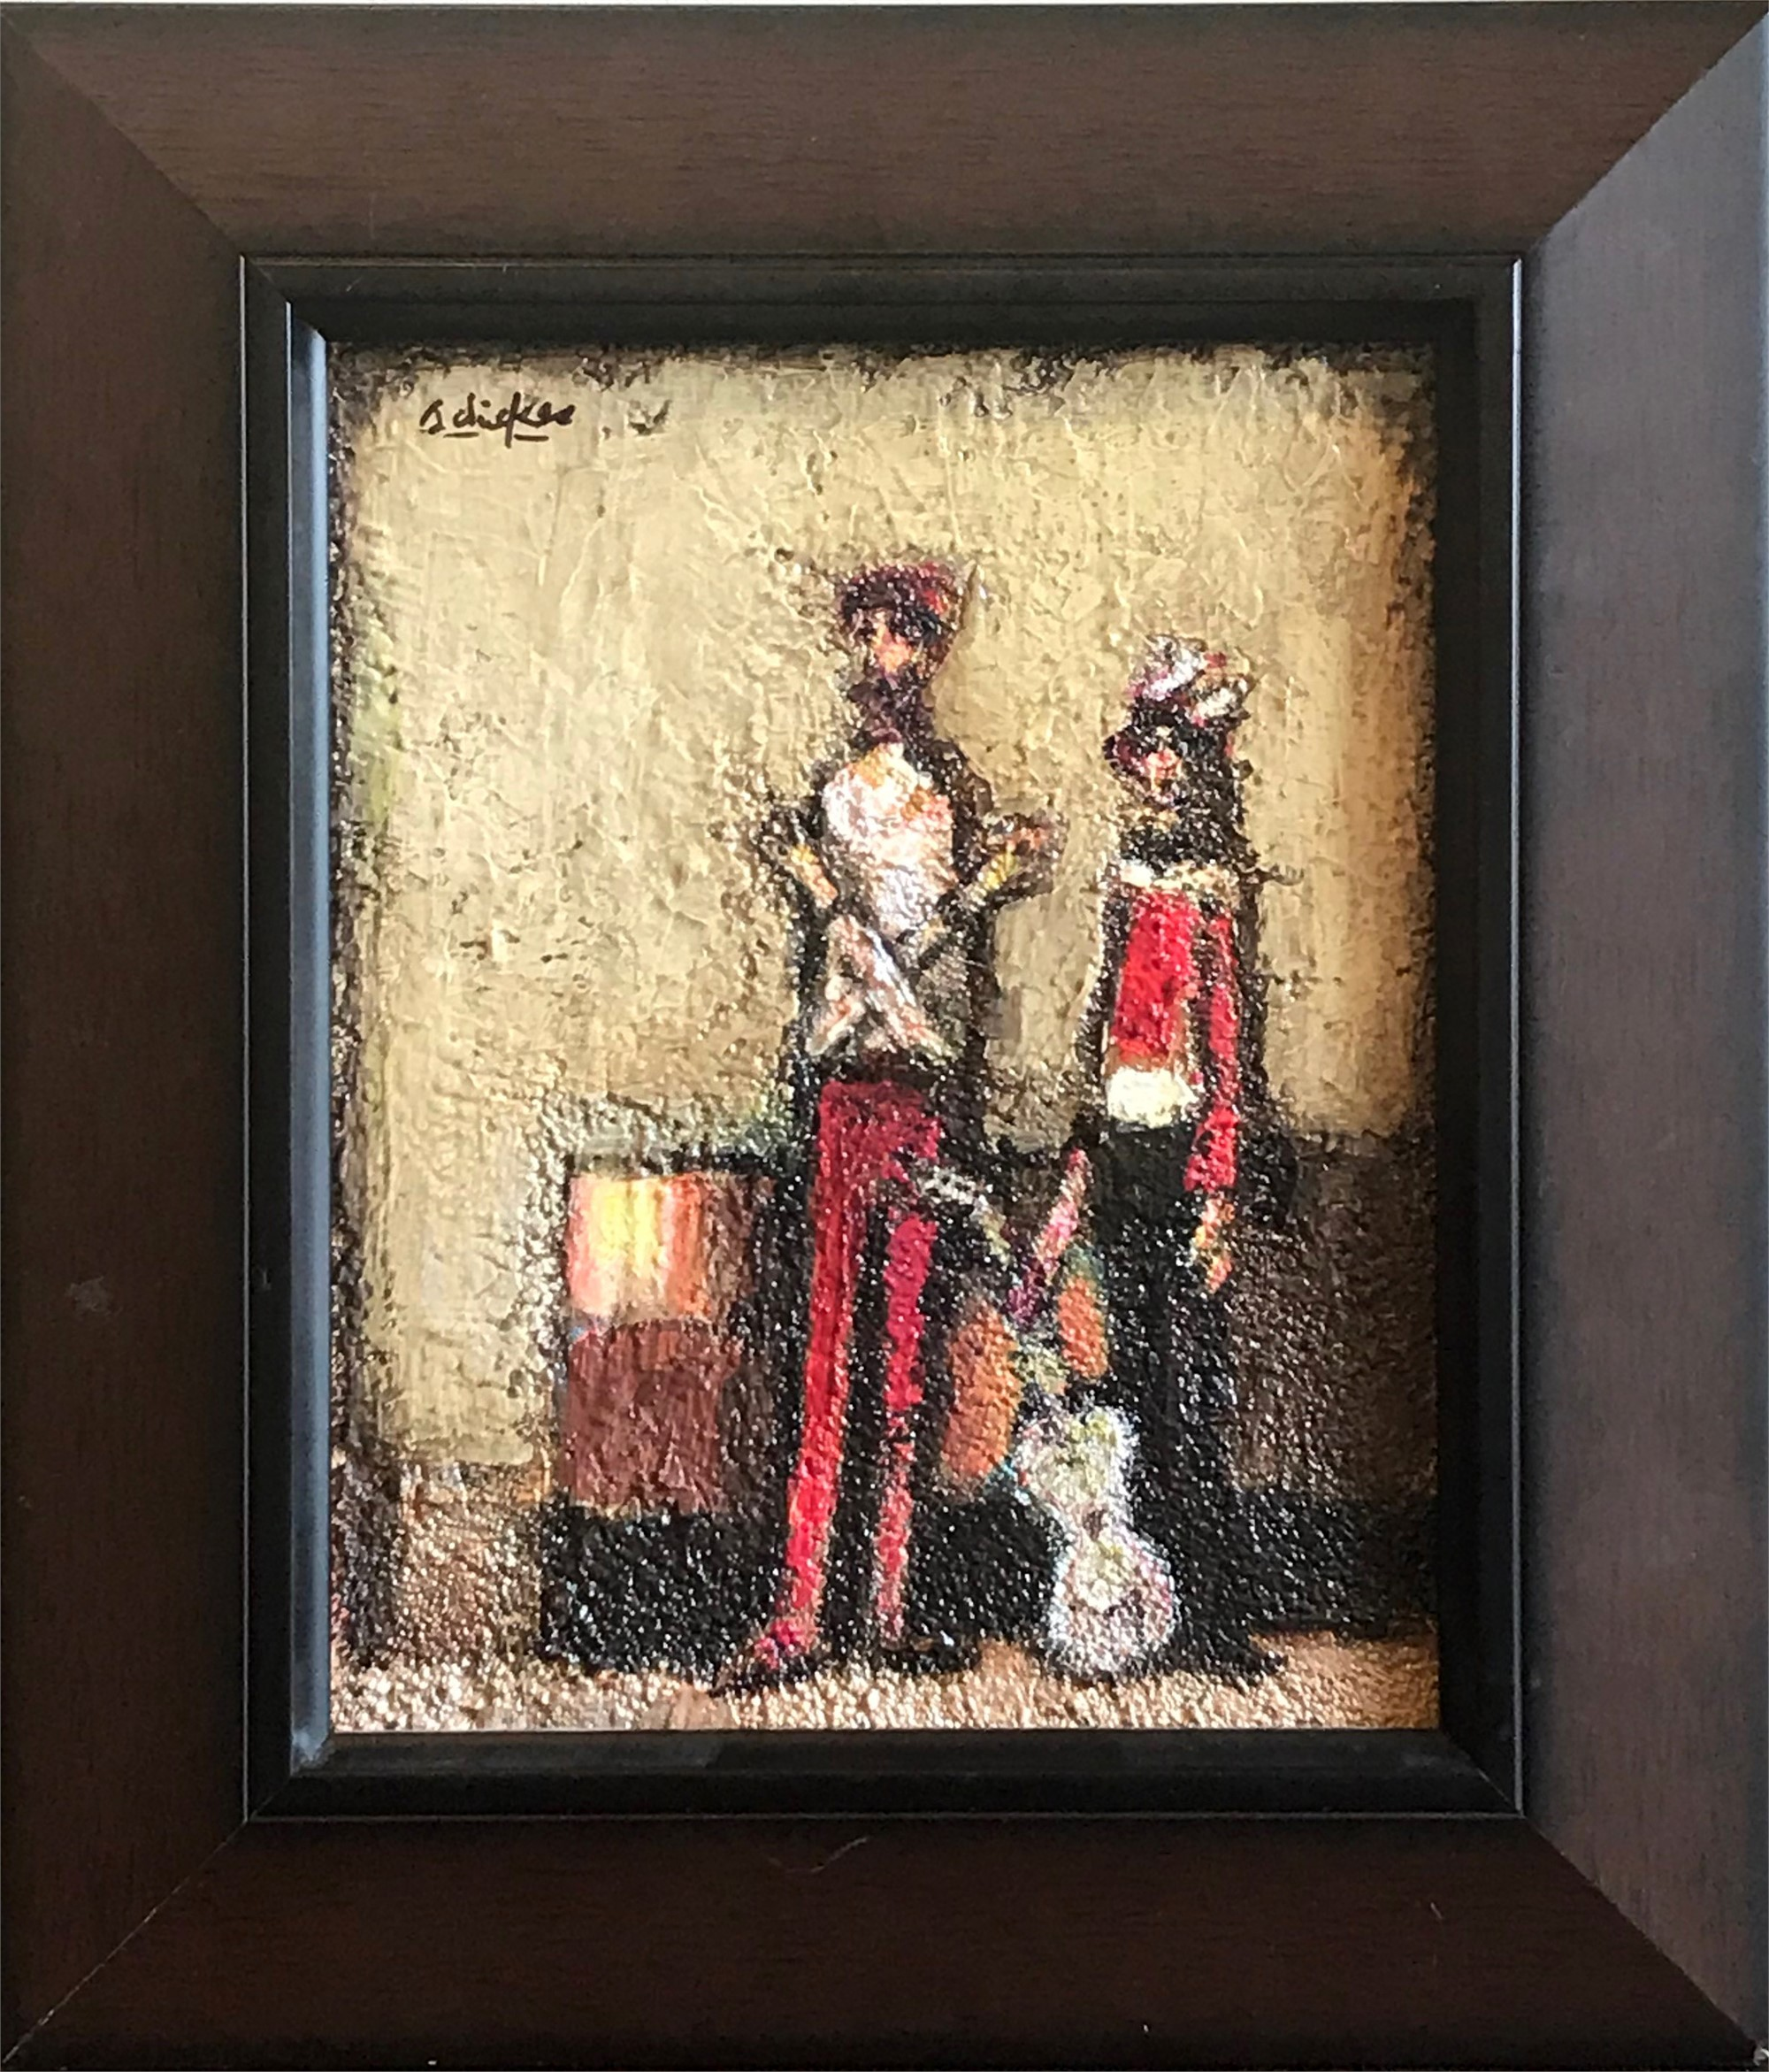 Two Men with Guitar by David Adickes